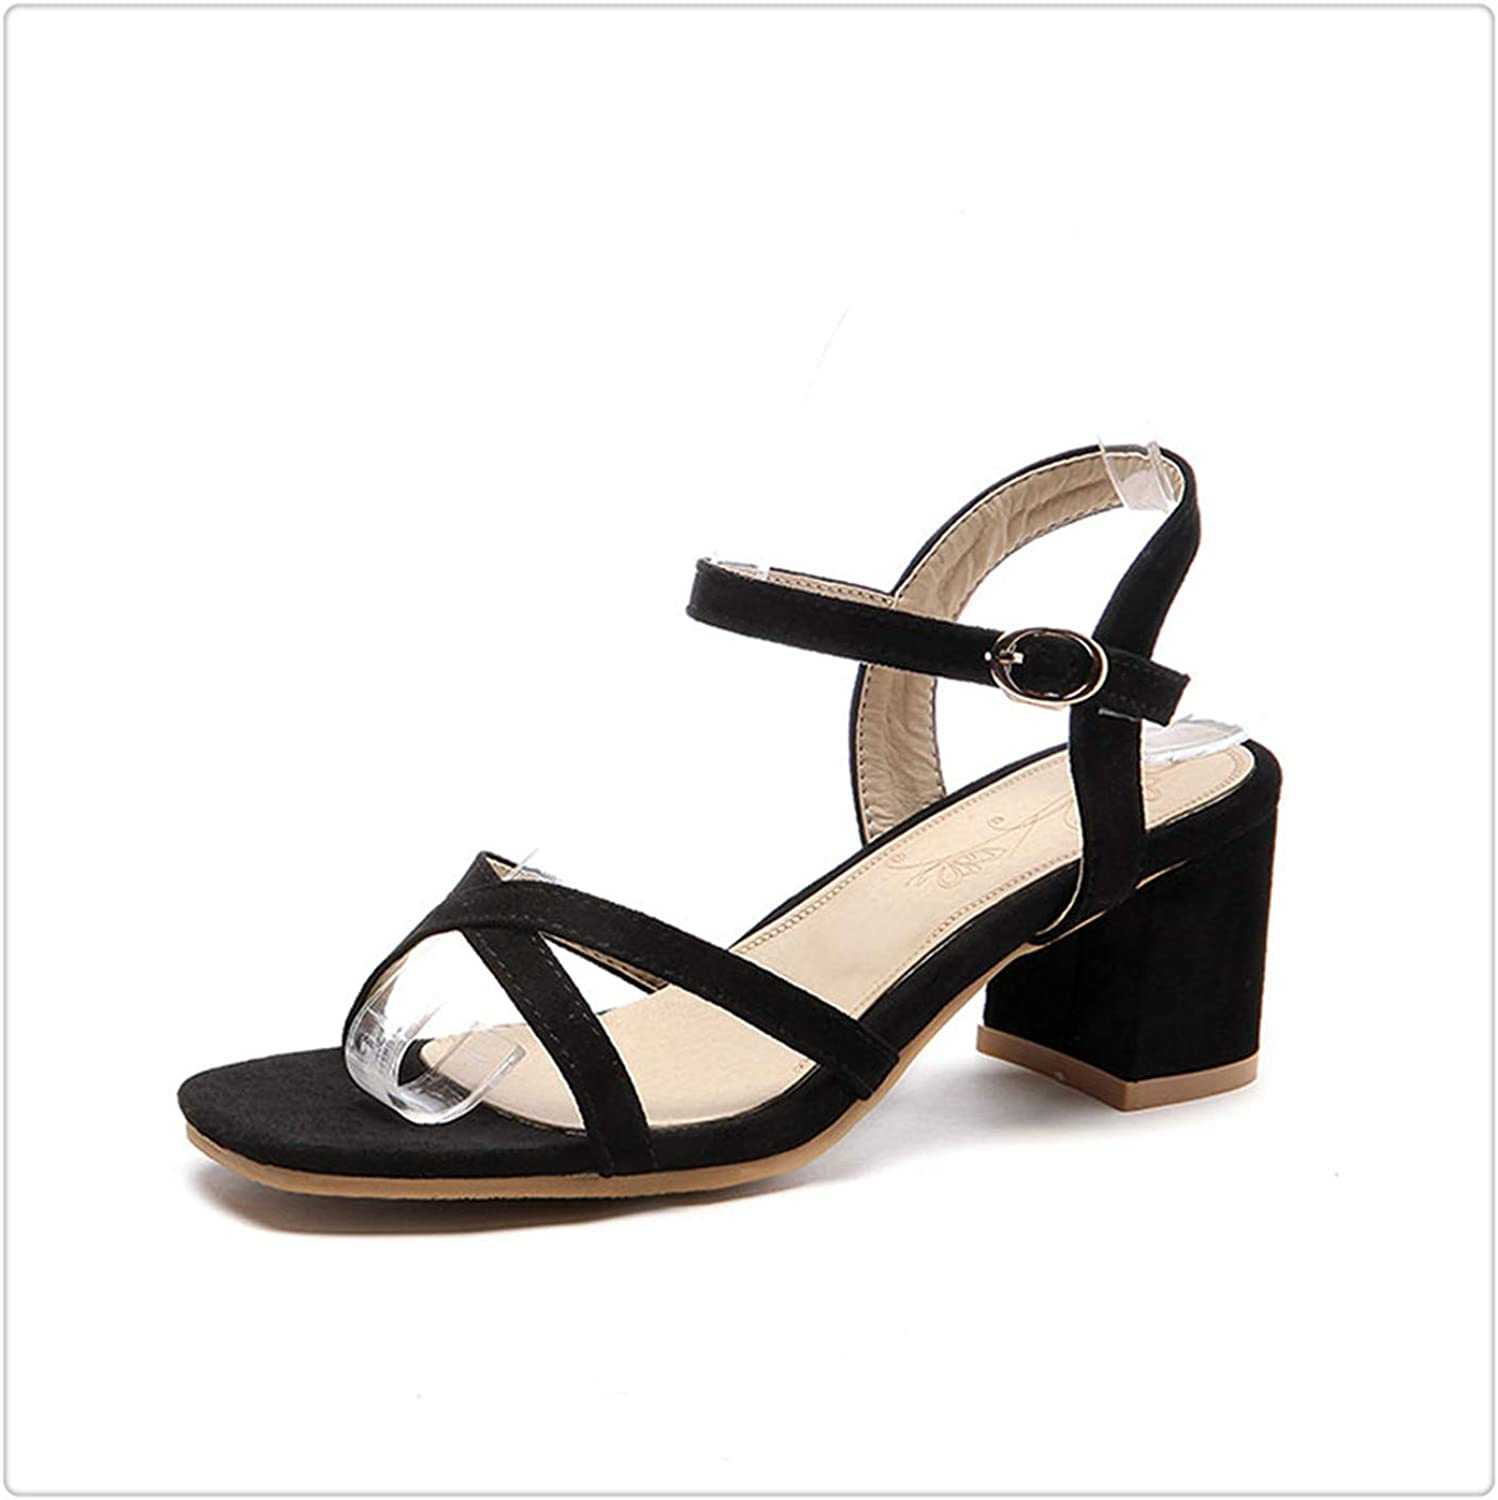 Yyixianma New Plus Size 32-46 Concise Ankle-Strap Summer shoes Women Sandals Fashion Square High Heels OL Sandals Woman Black 10